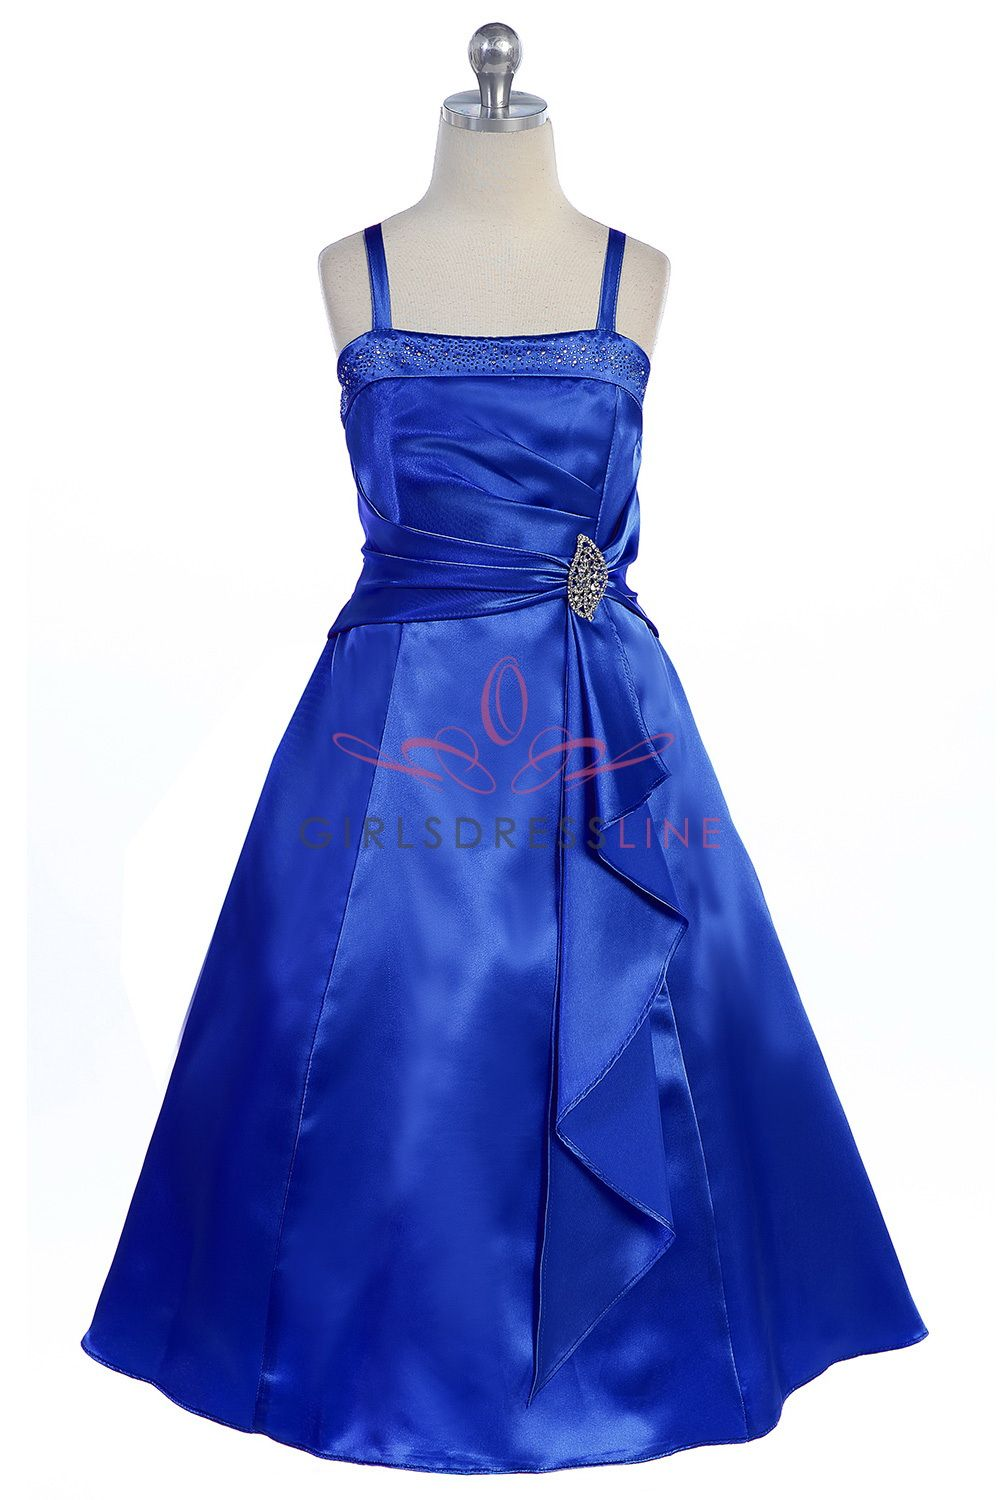 ce31297c746 Royal Blue Brilliant Satin Rufflel Detail A-line Flower Girl Dress with  Sparkles L4305-RB  49.95 on www.GirlsDressLine.Com